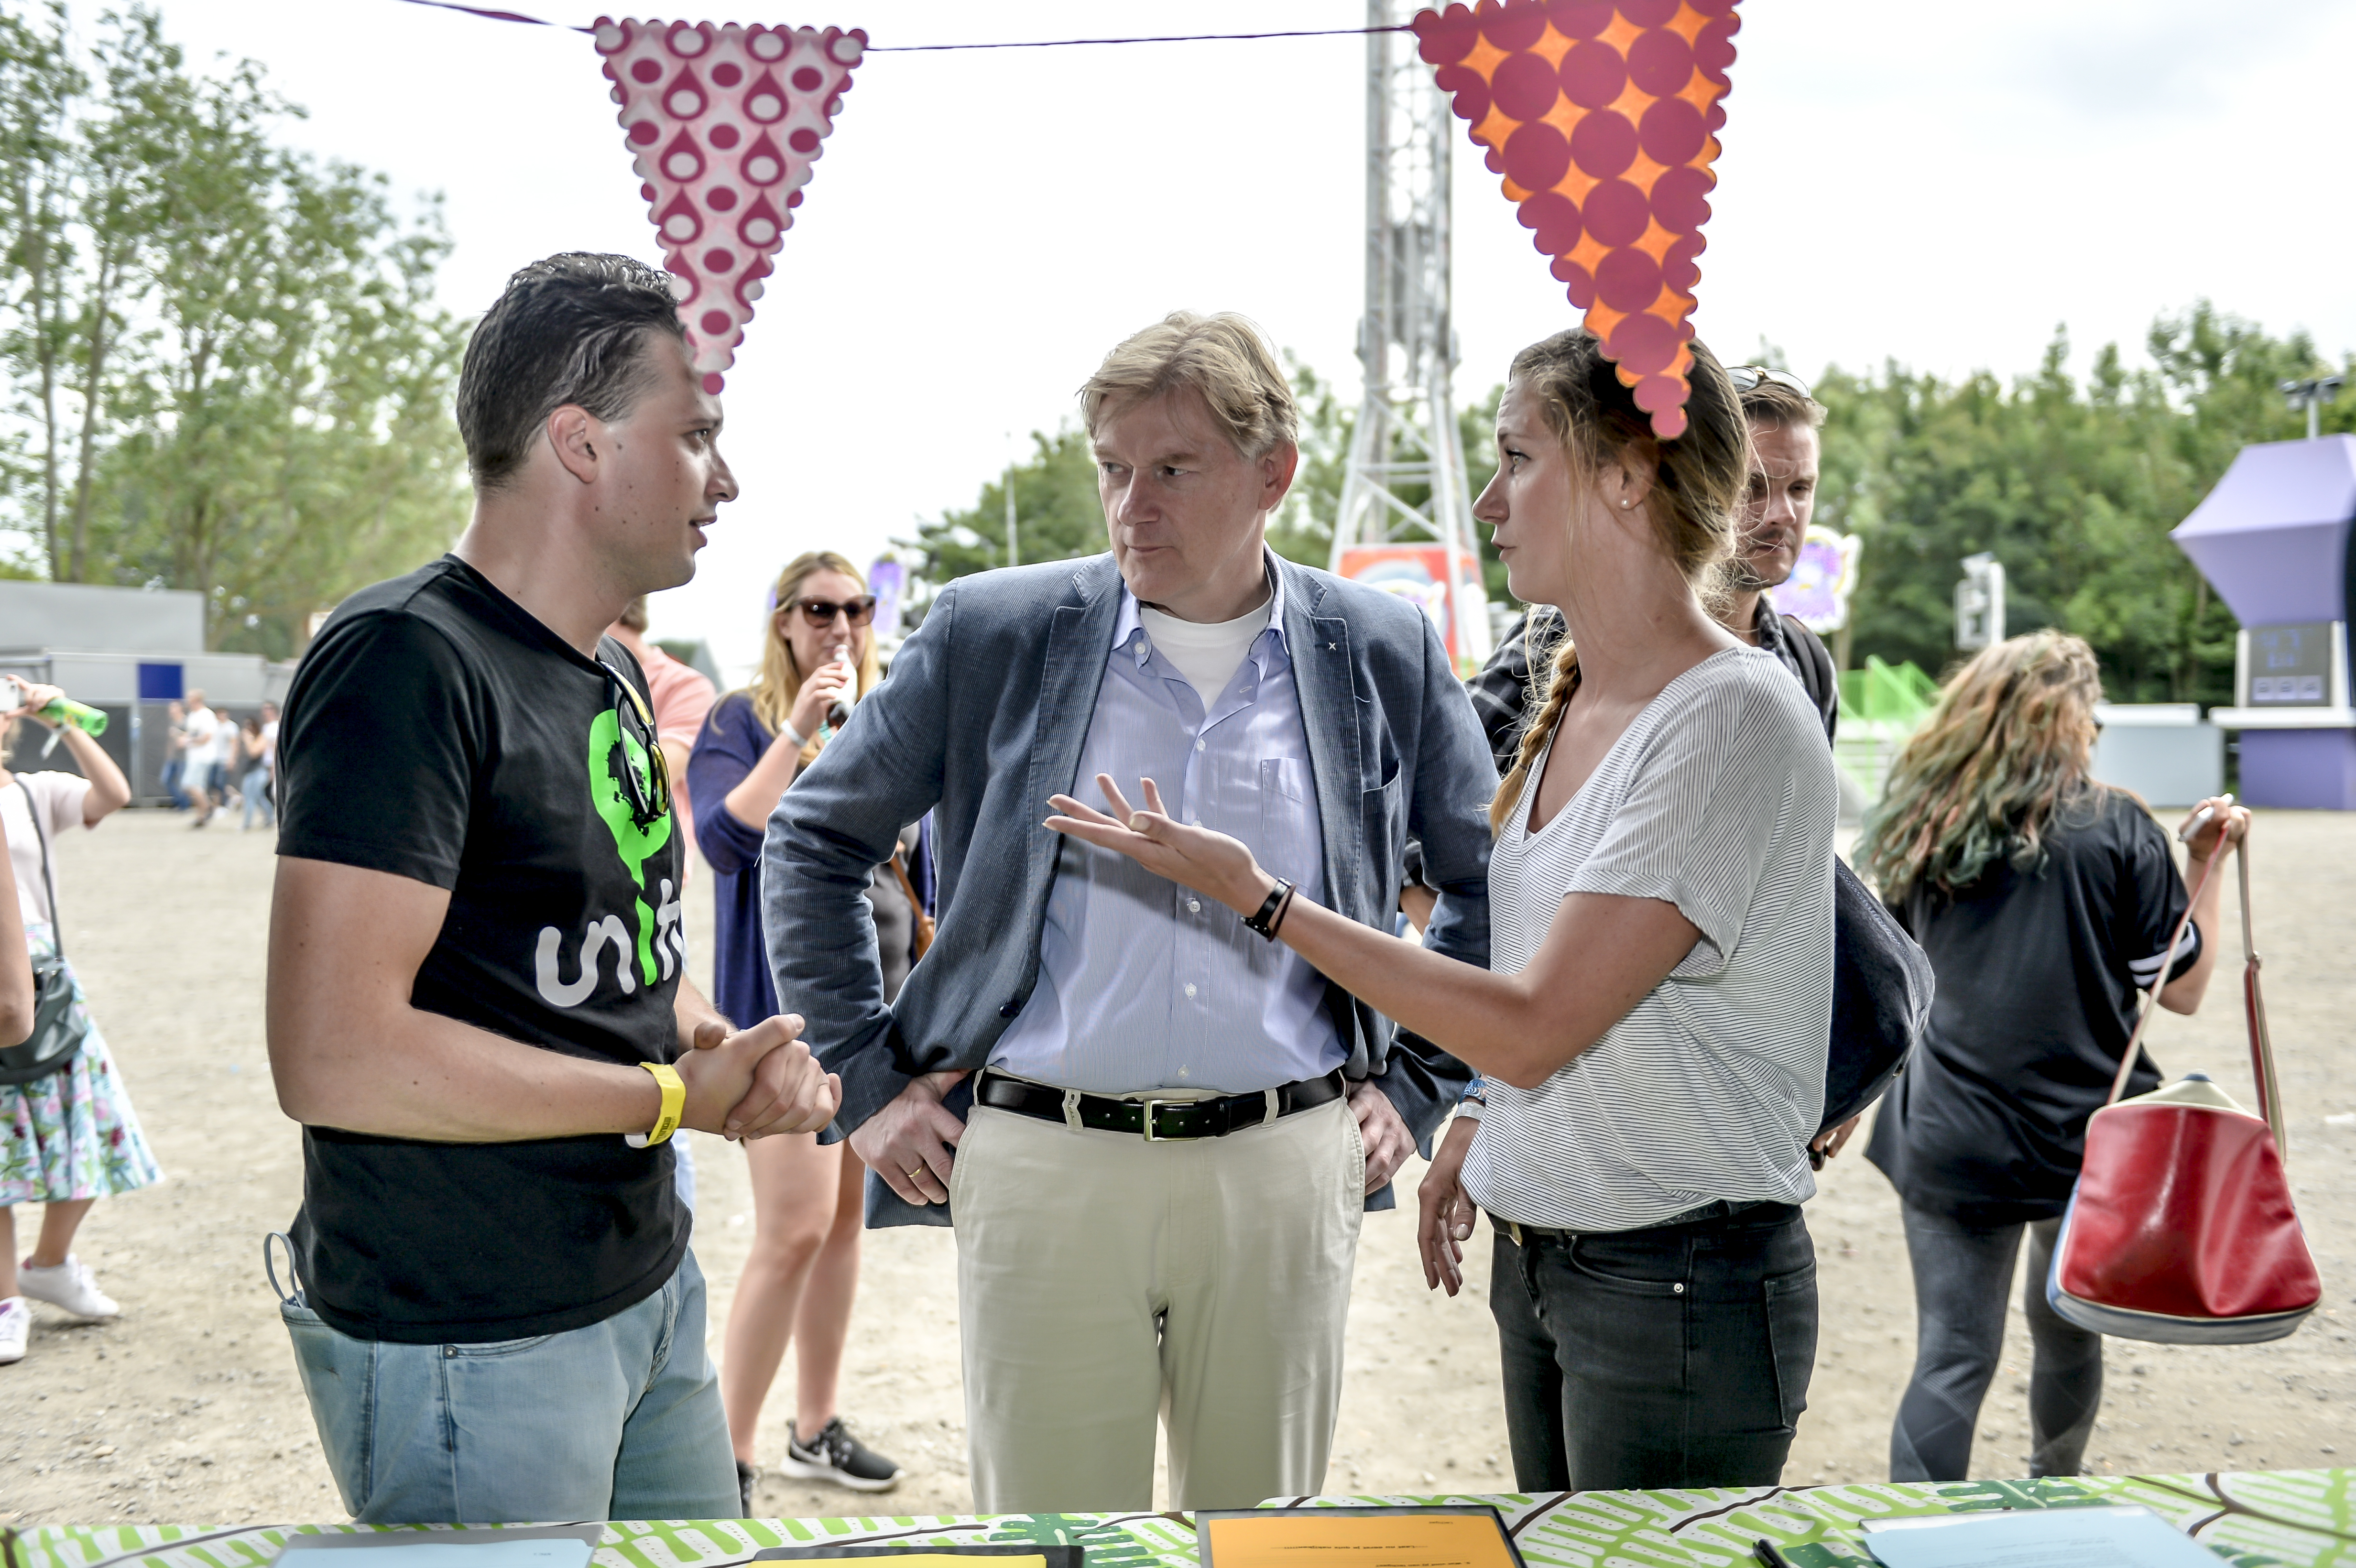 2015-06-27_Pers-Schippers-Unity_0020_©photo-company.nl